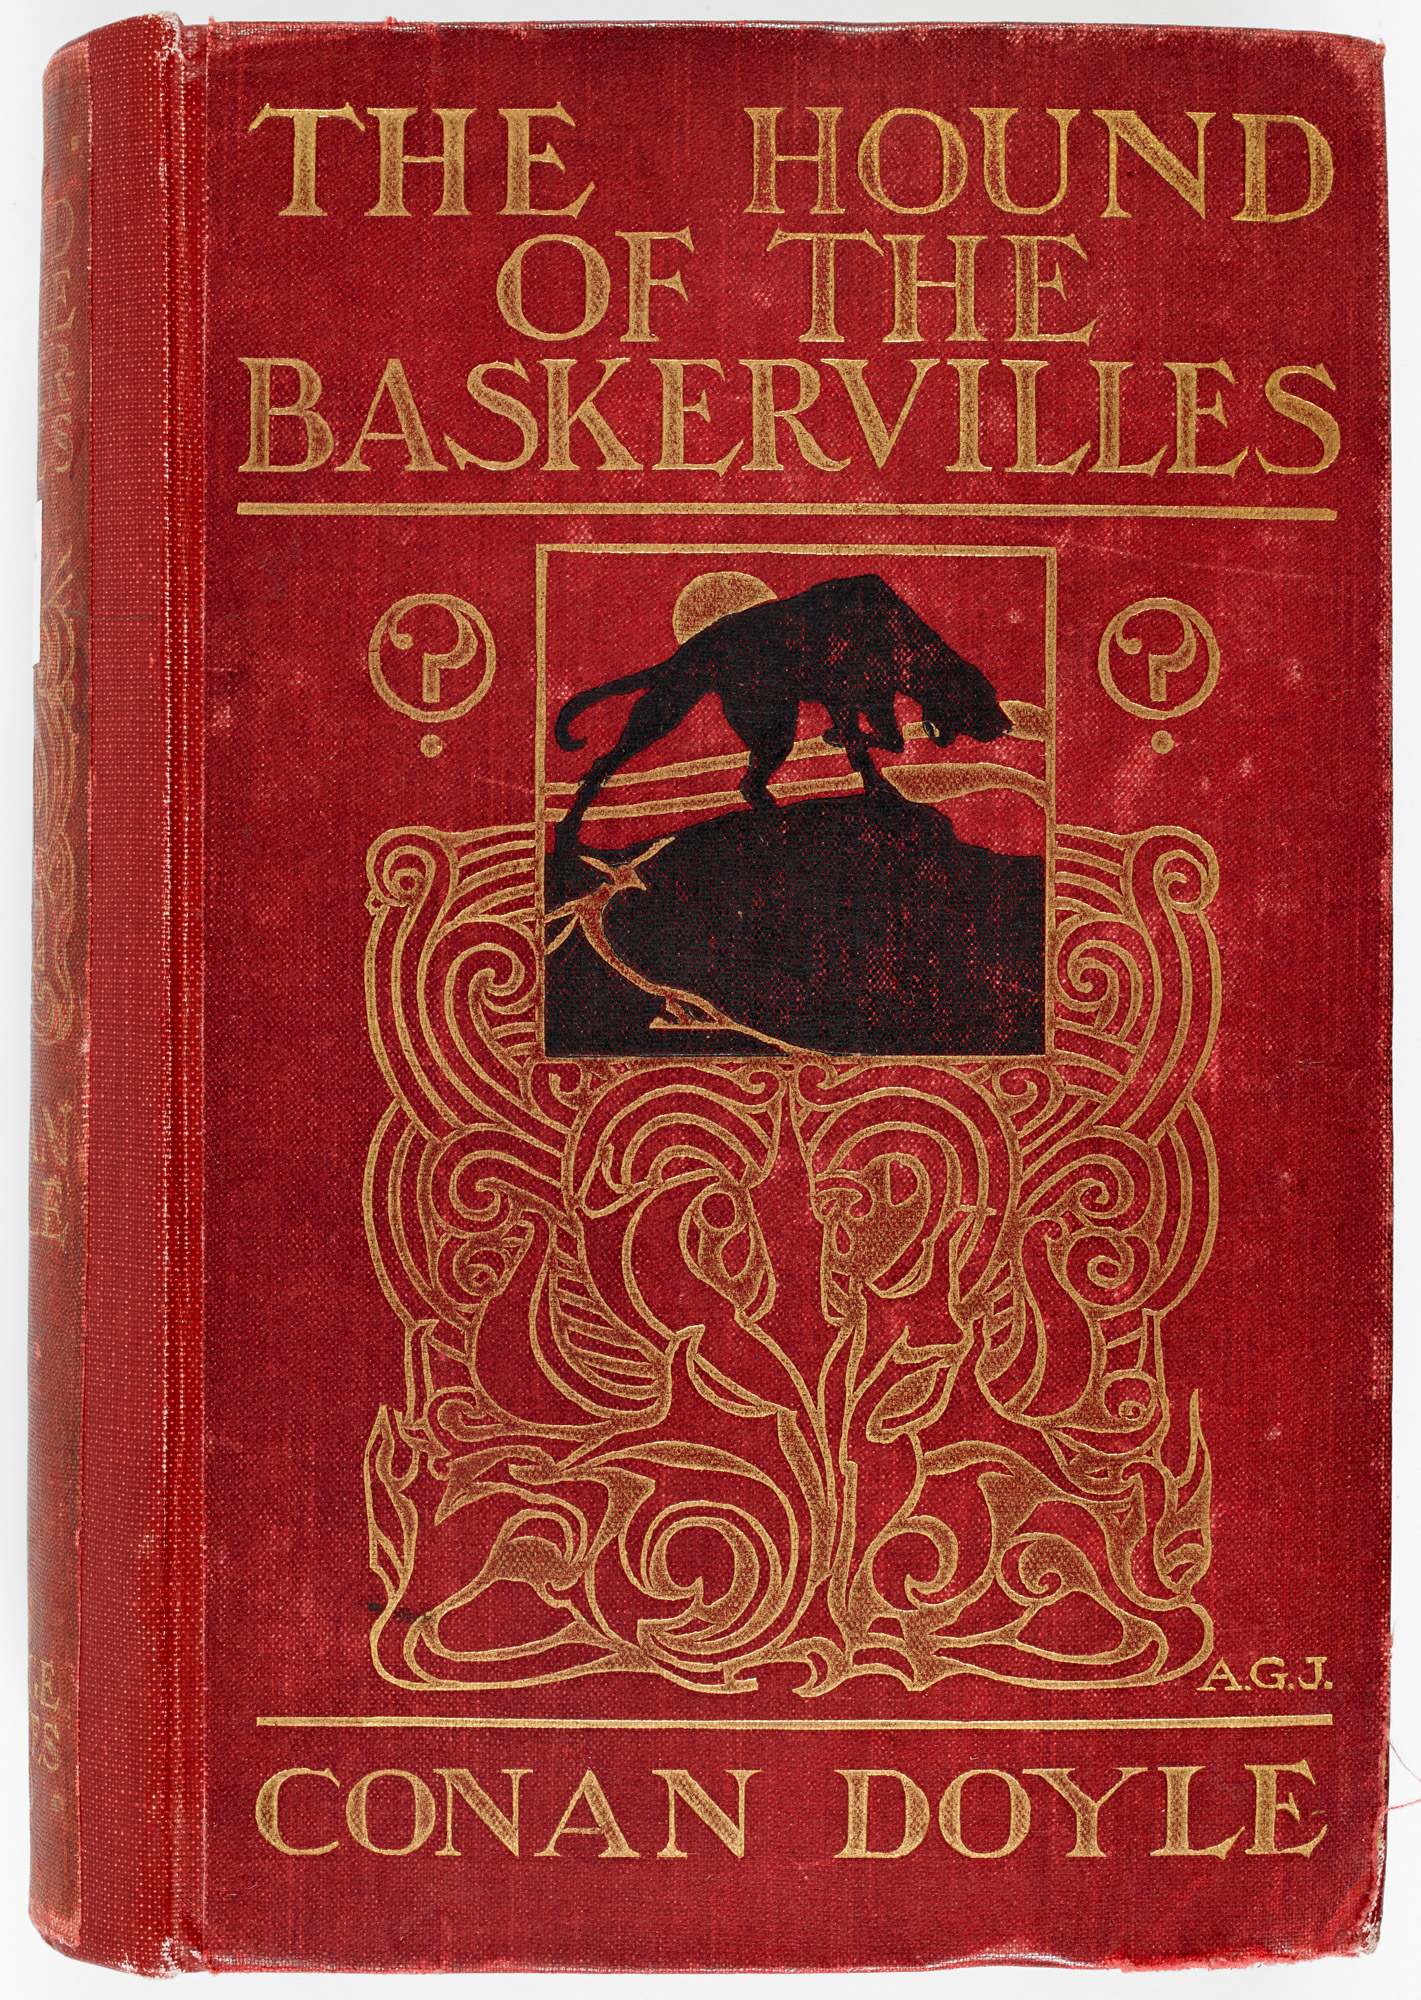 Illustrated front cover, showing the Hound of the Baskervilles.